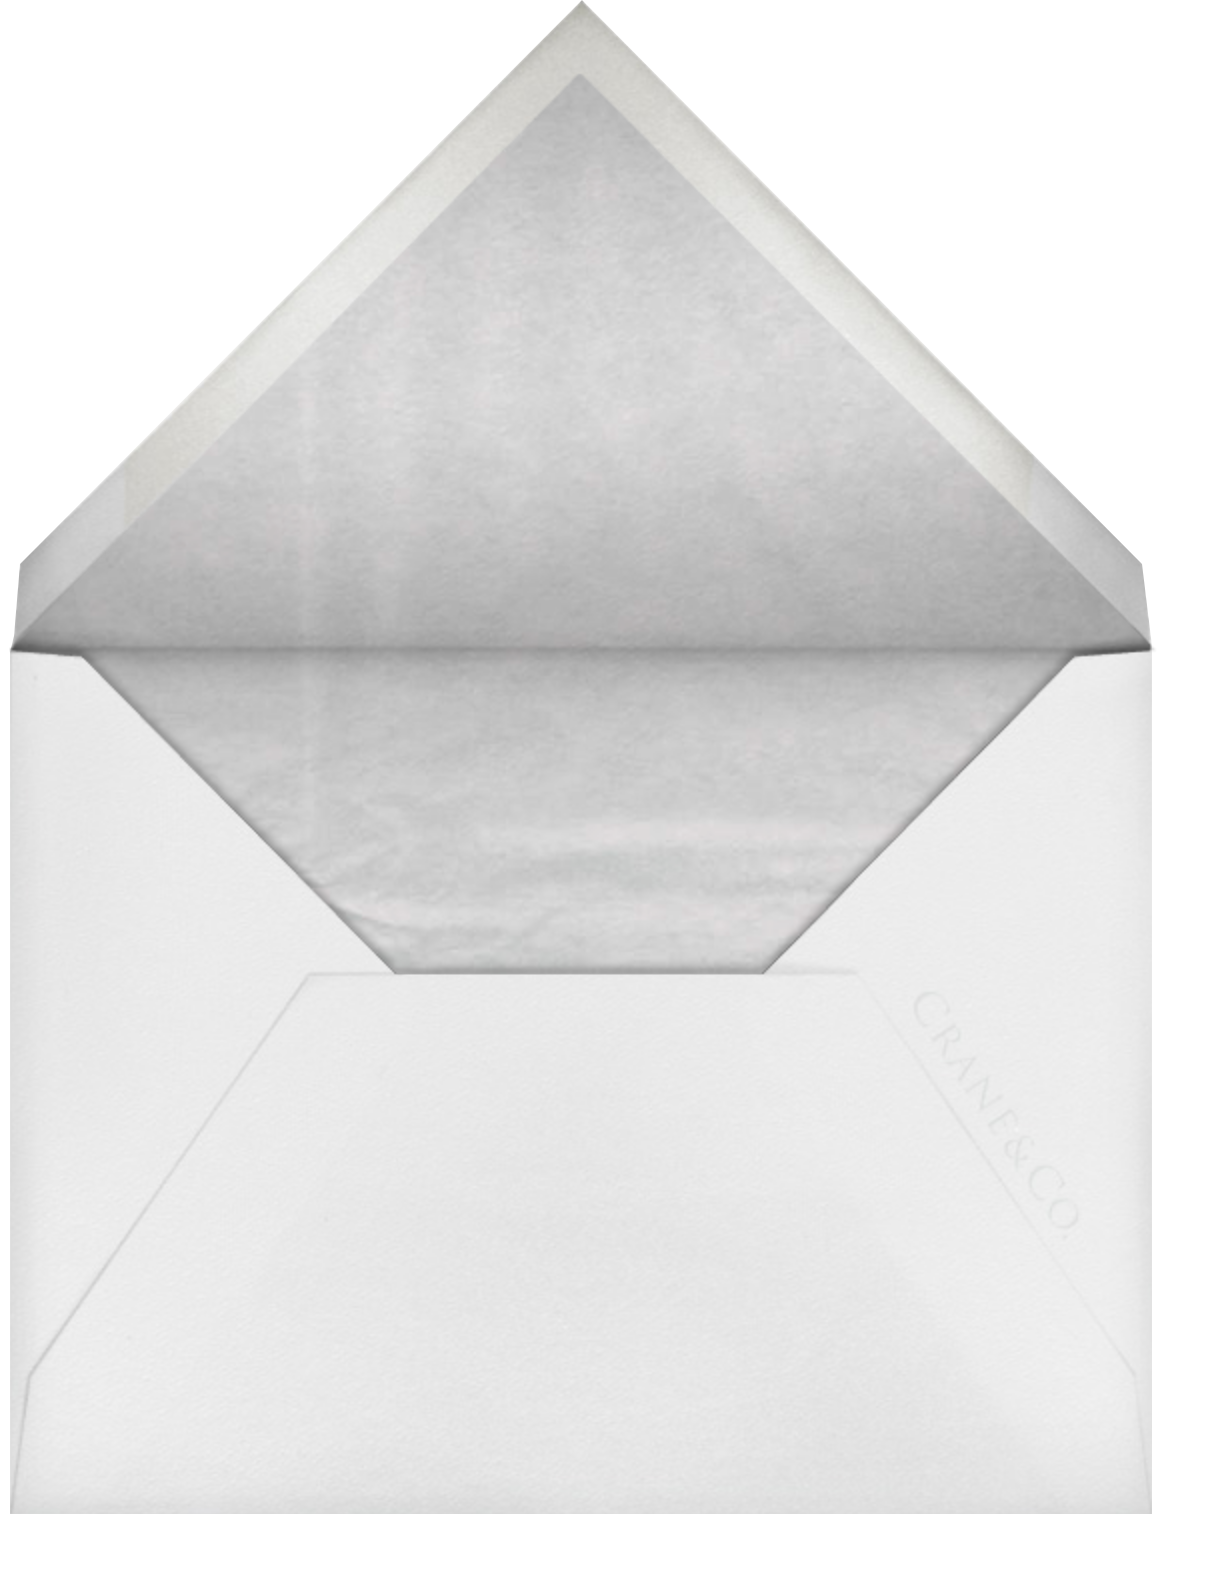 Cheverny (Thank You) - Pewter Gray - Crane & Co. - Personalized stationery - envelope back